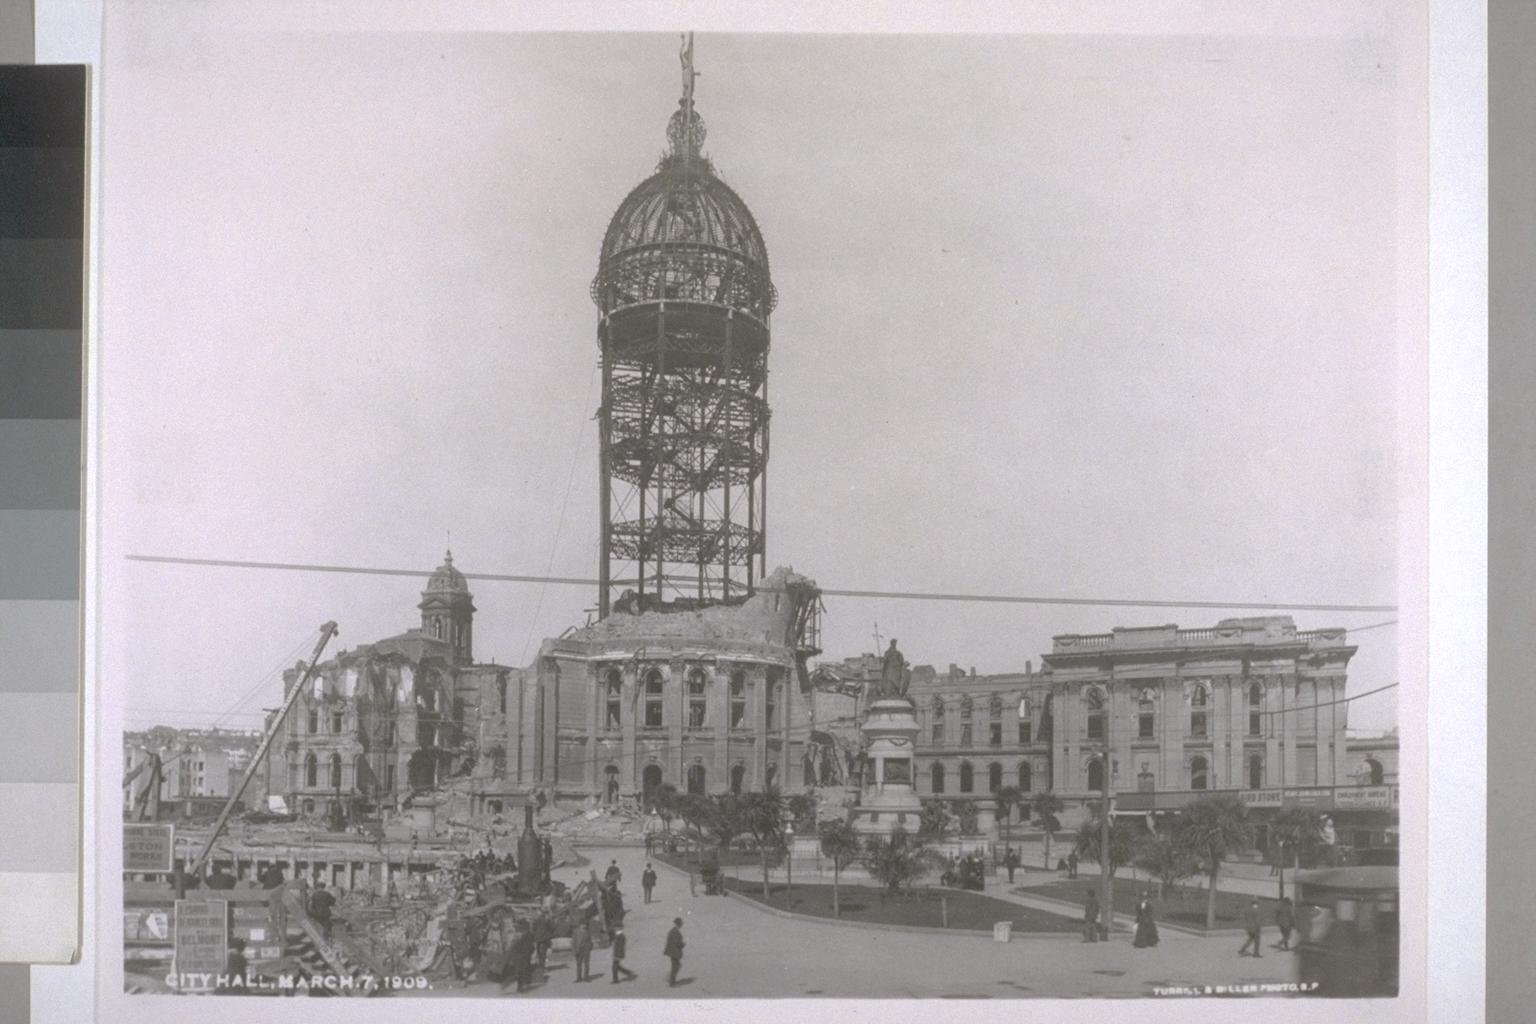 San Francisco's original City Hall after the 1906 earthquake (UC Berkeley, Bancroft Library).